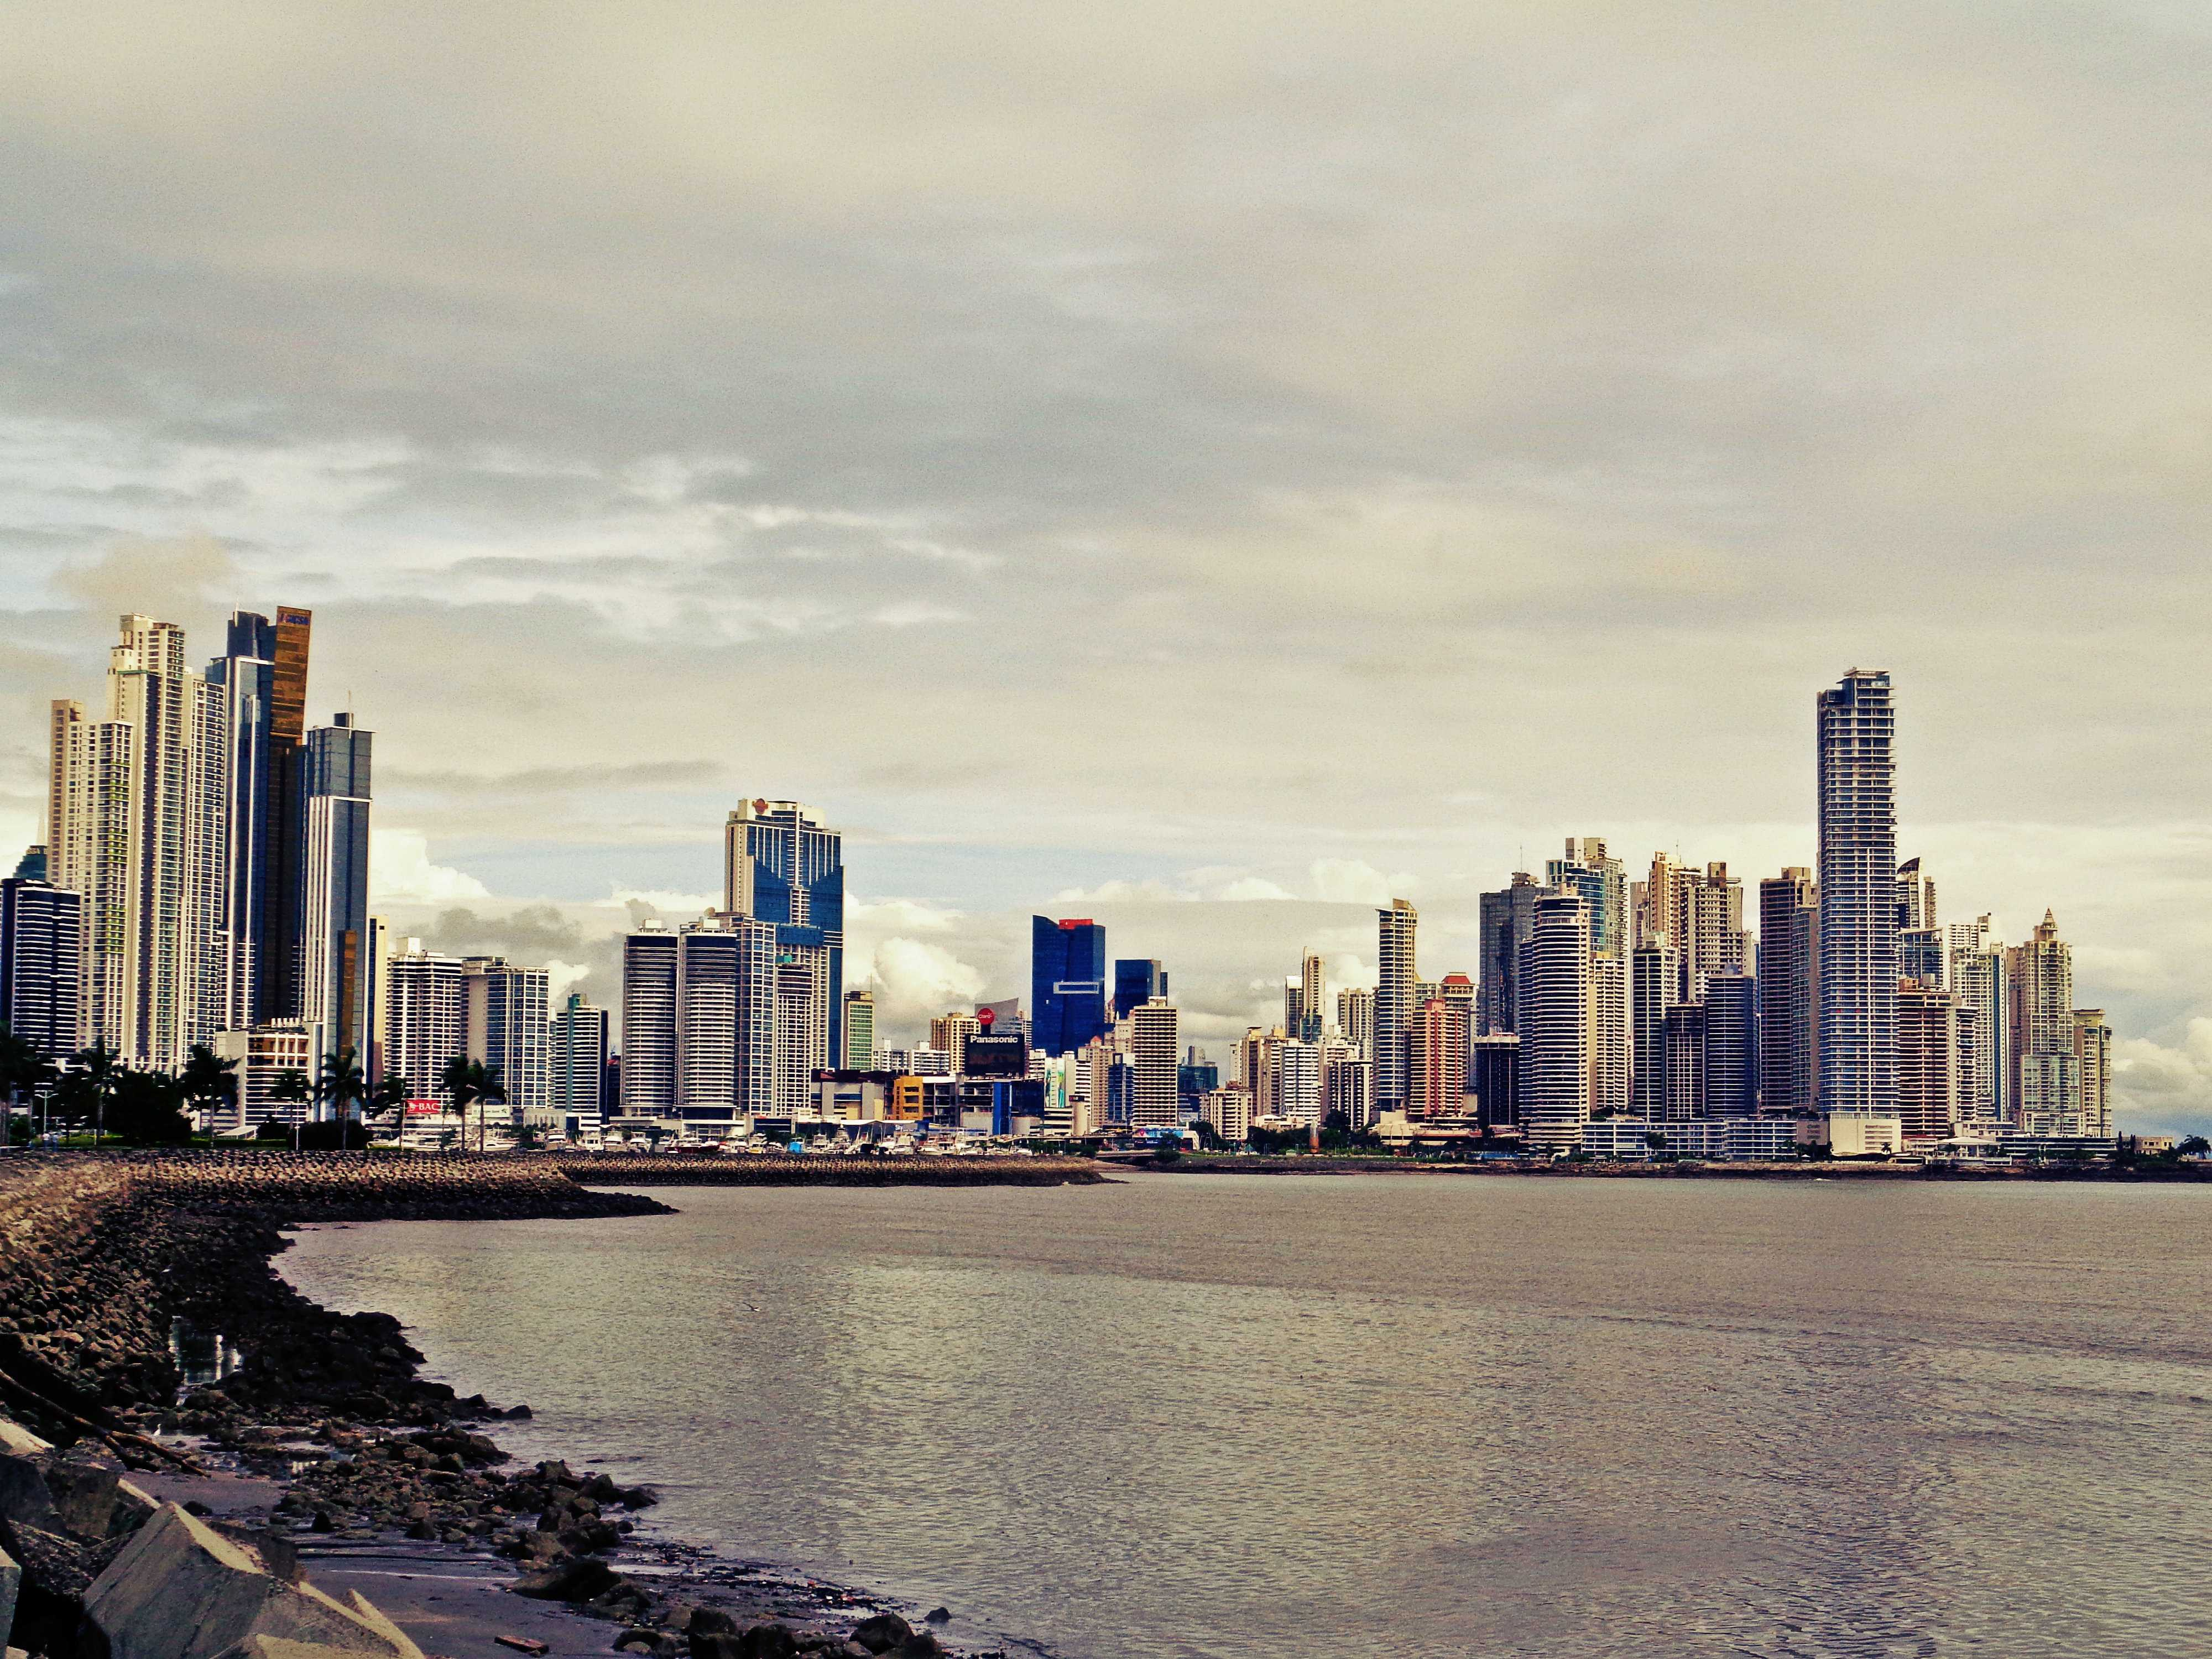 original_panama-city-2163483